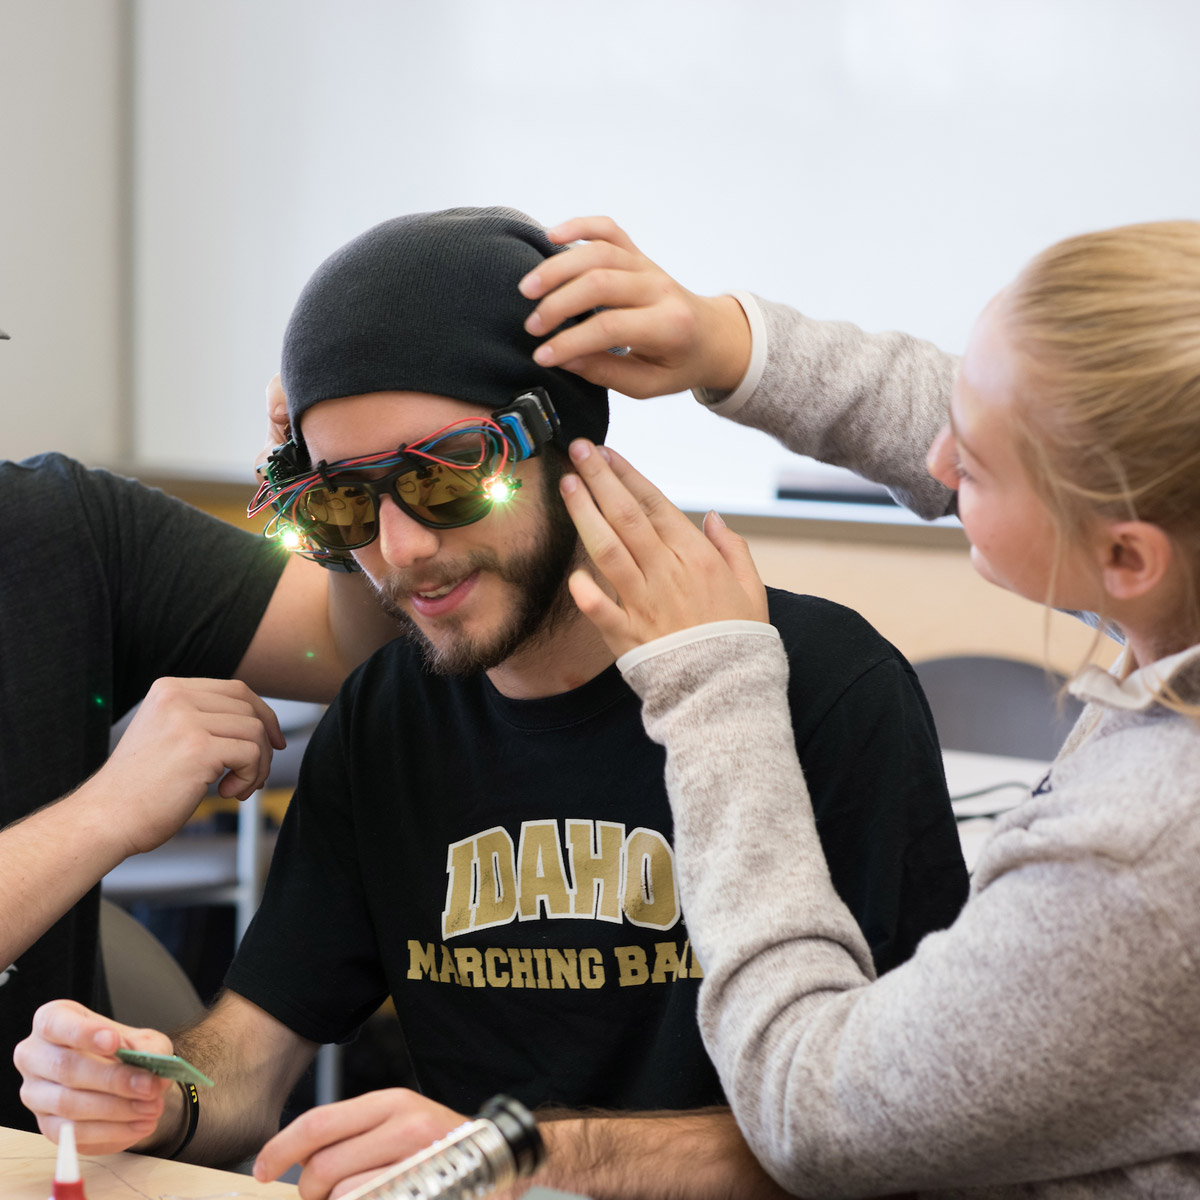 A student wears sunglasses wired with lights